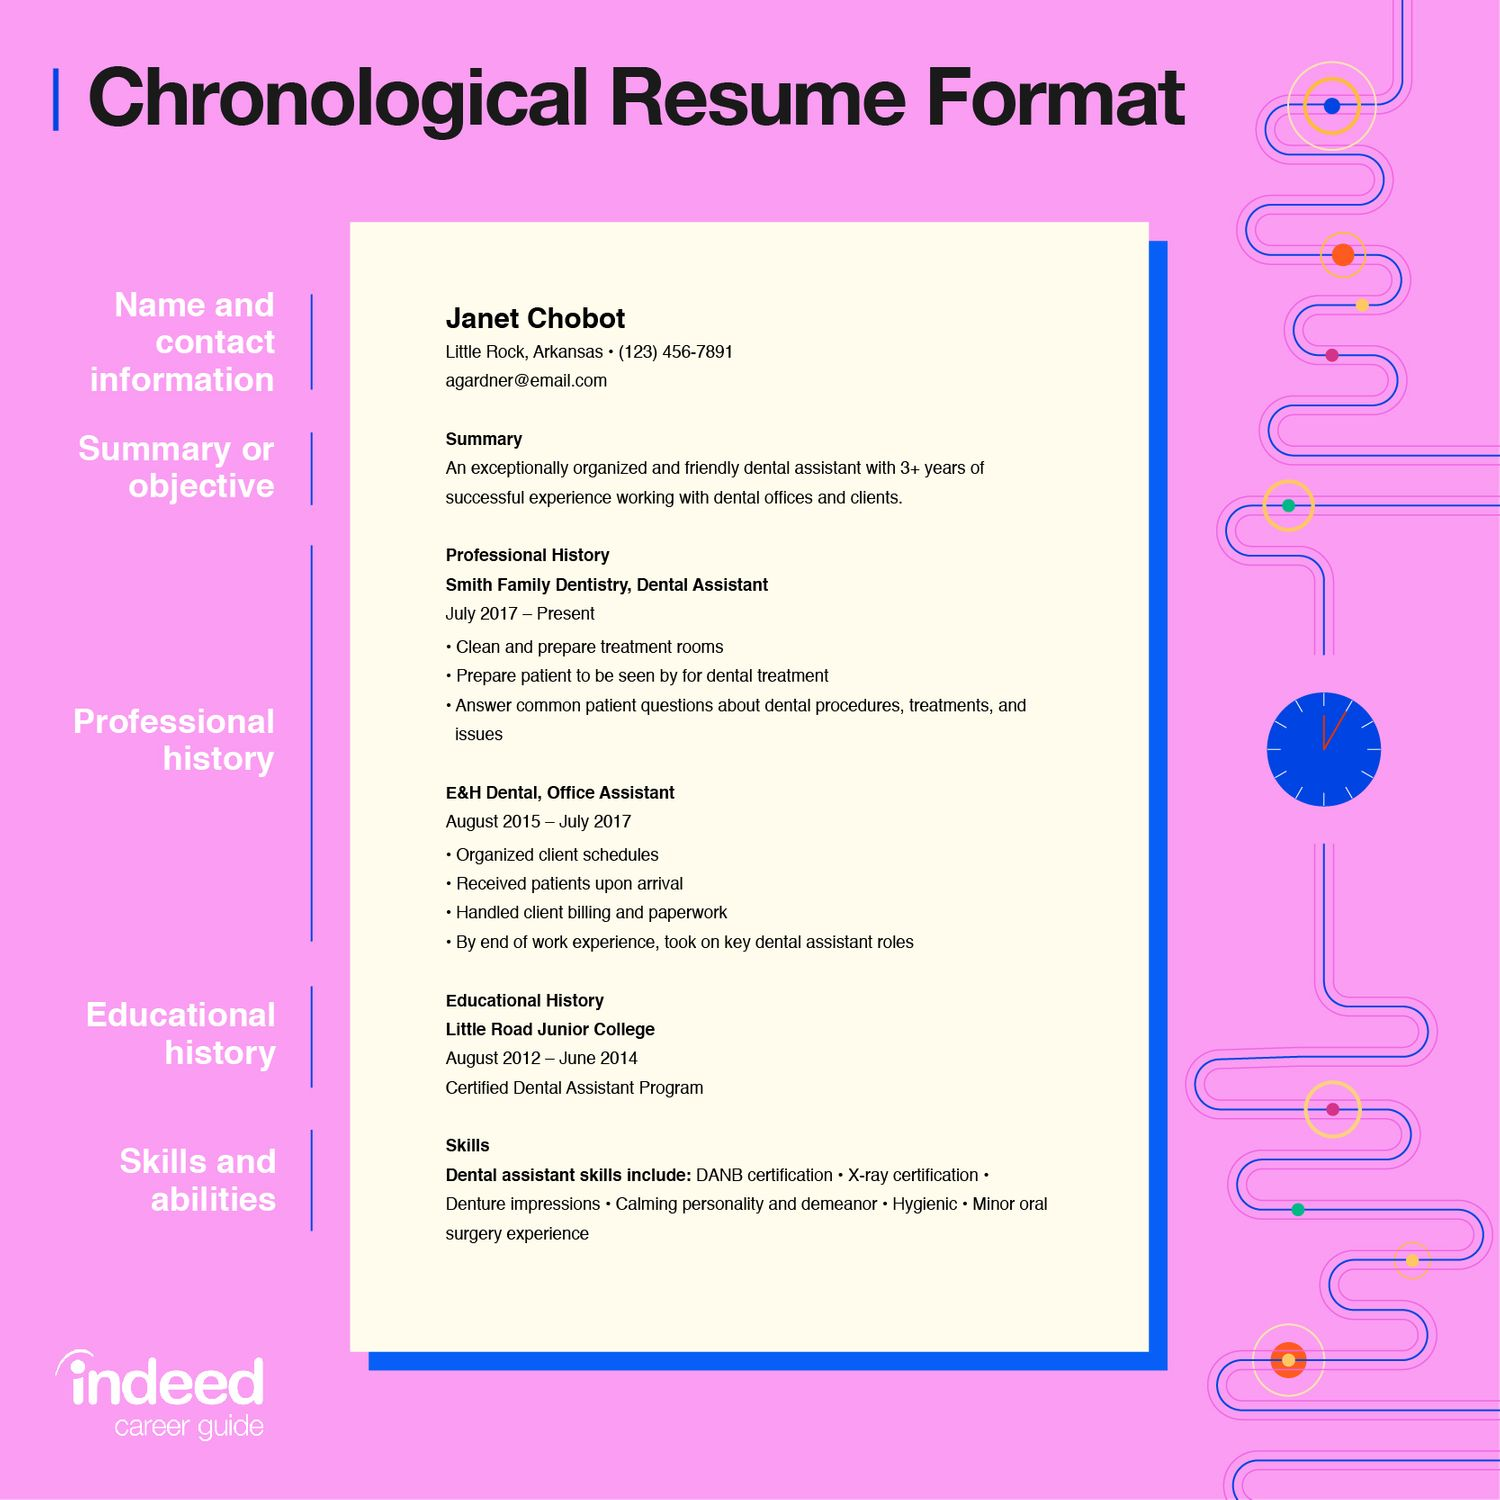 to make resume with examples indeed can do resized data scientist latex fax cover letter Resume Where Can I Do A Resume